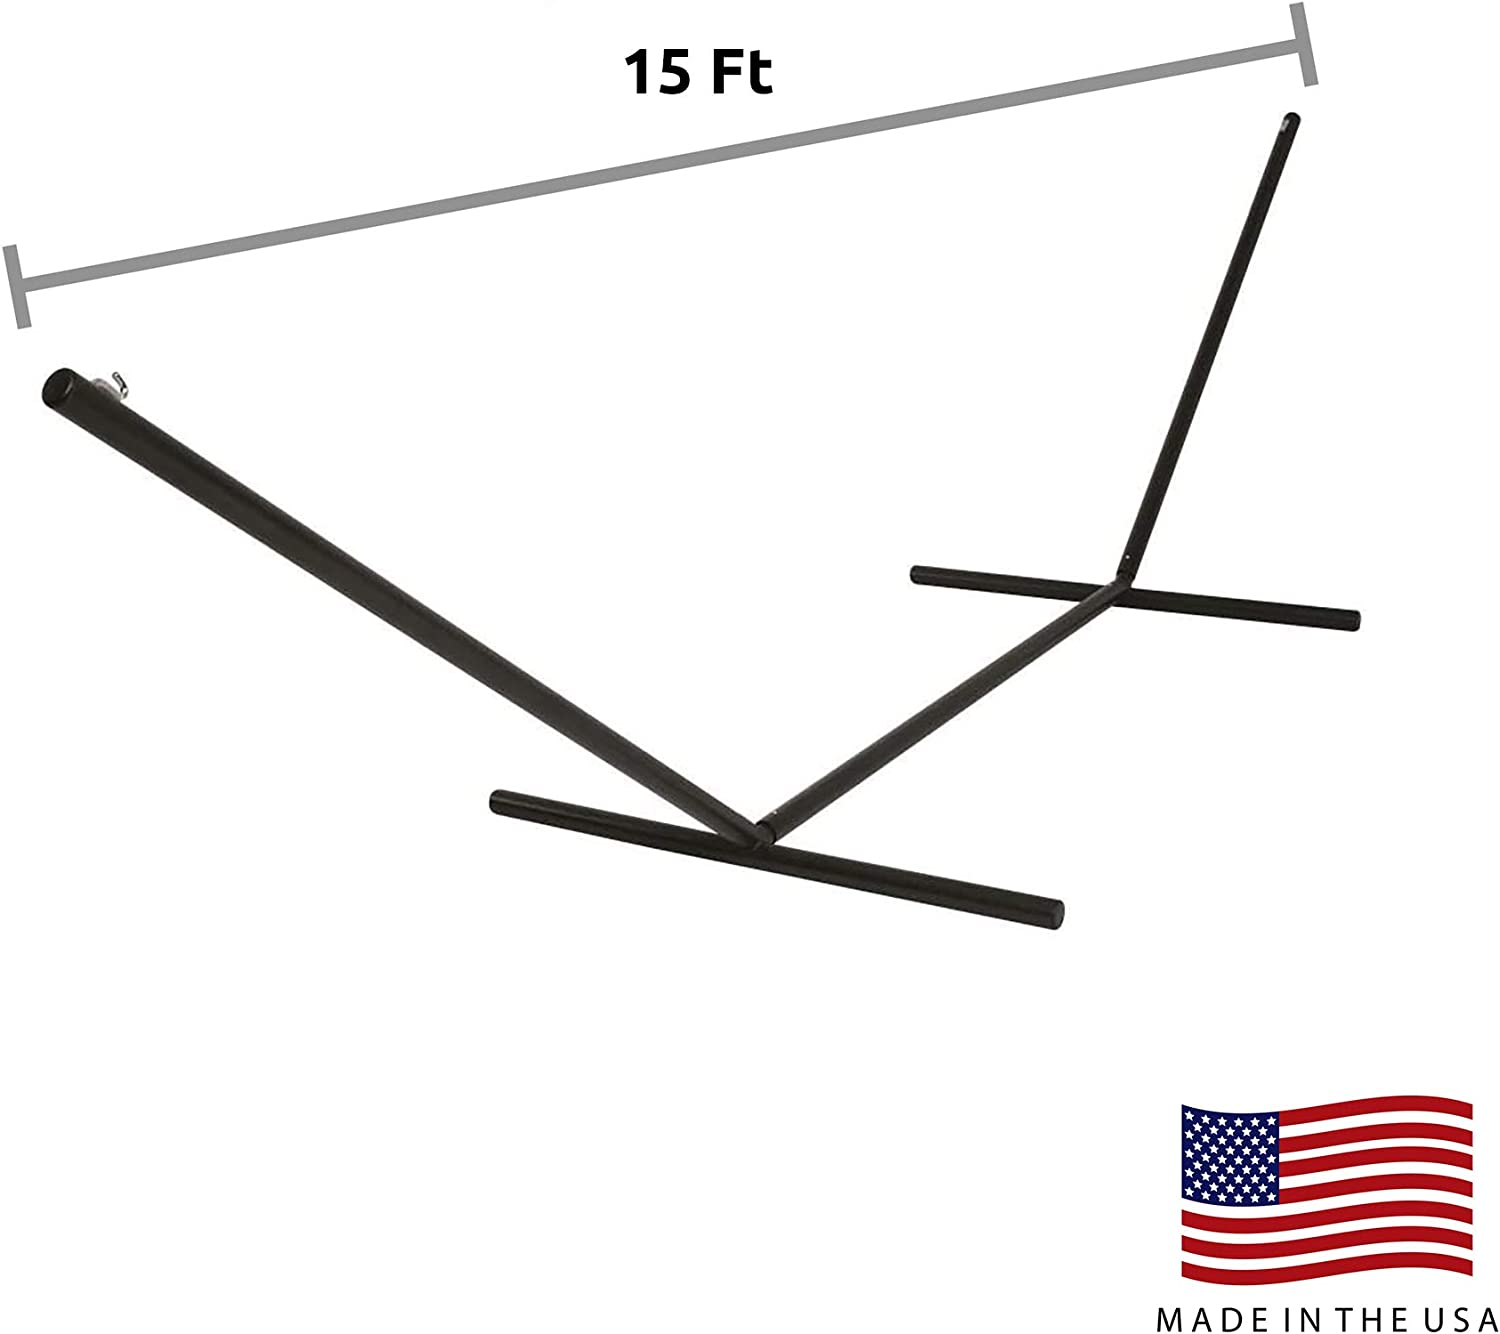 Hatteras Hammocks 15 ft. Tri-Beam Steel Hammock Stand Black